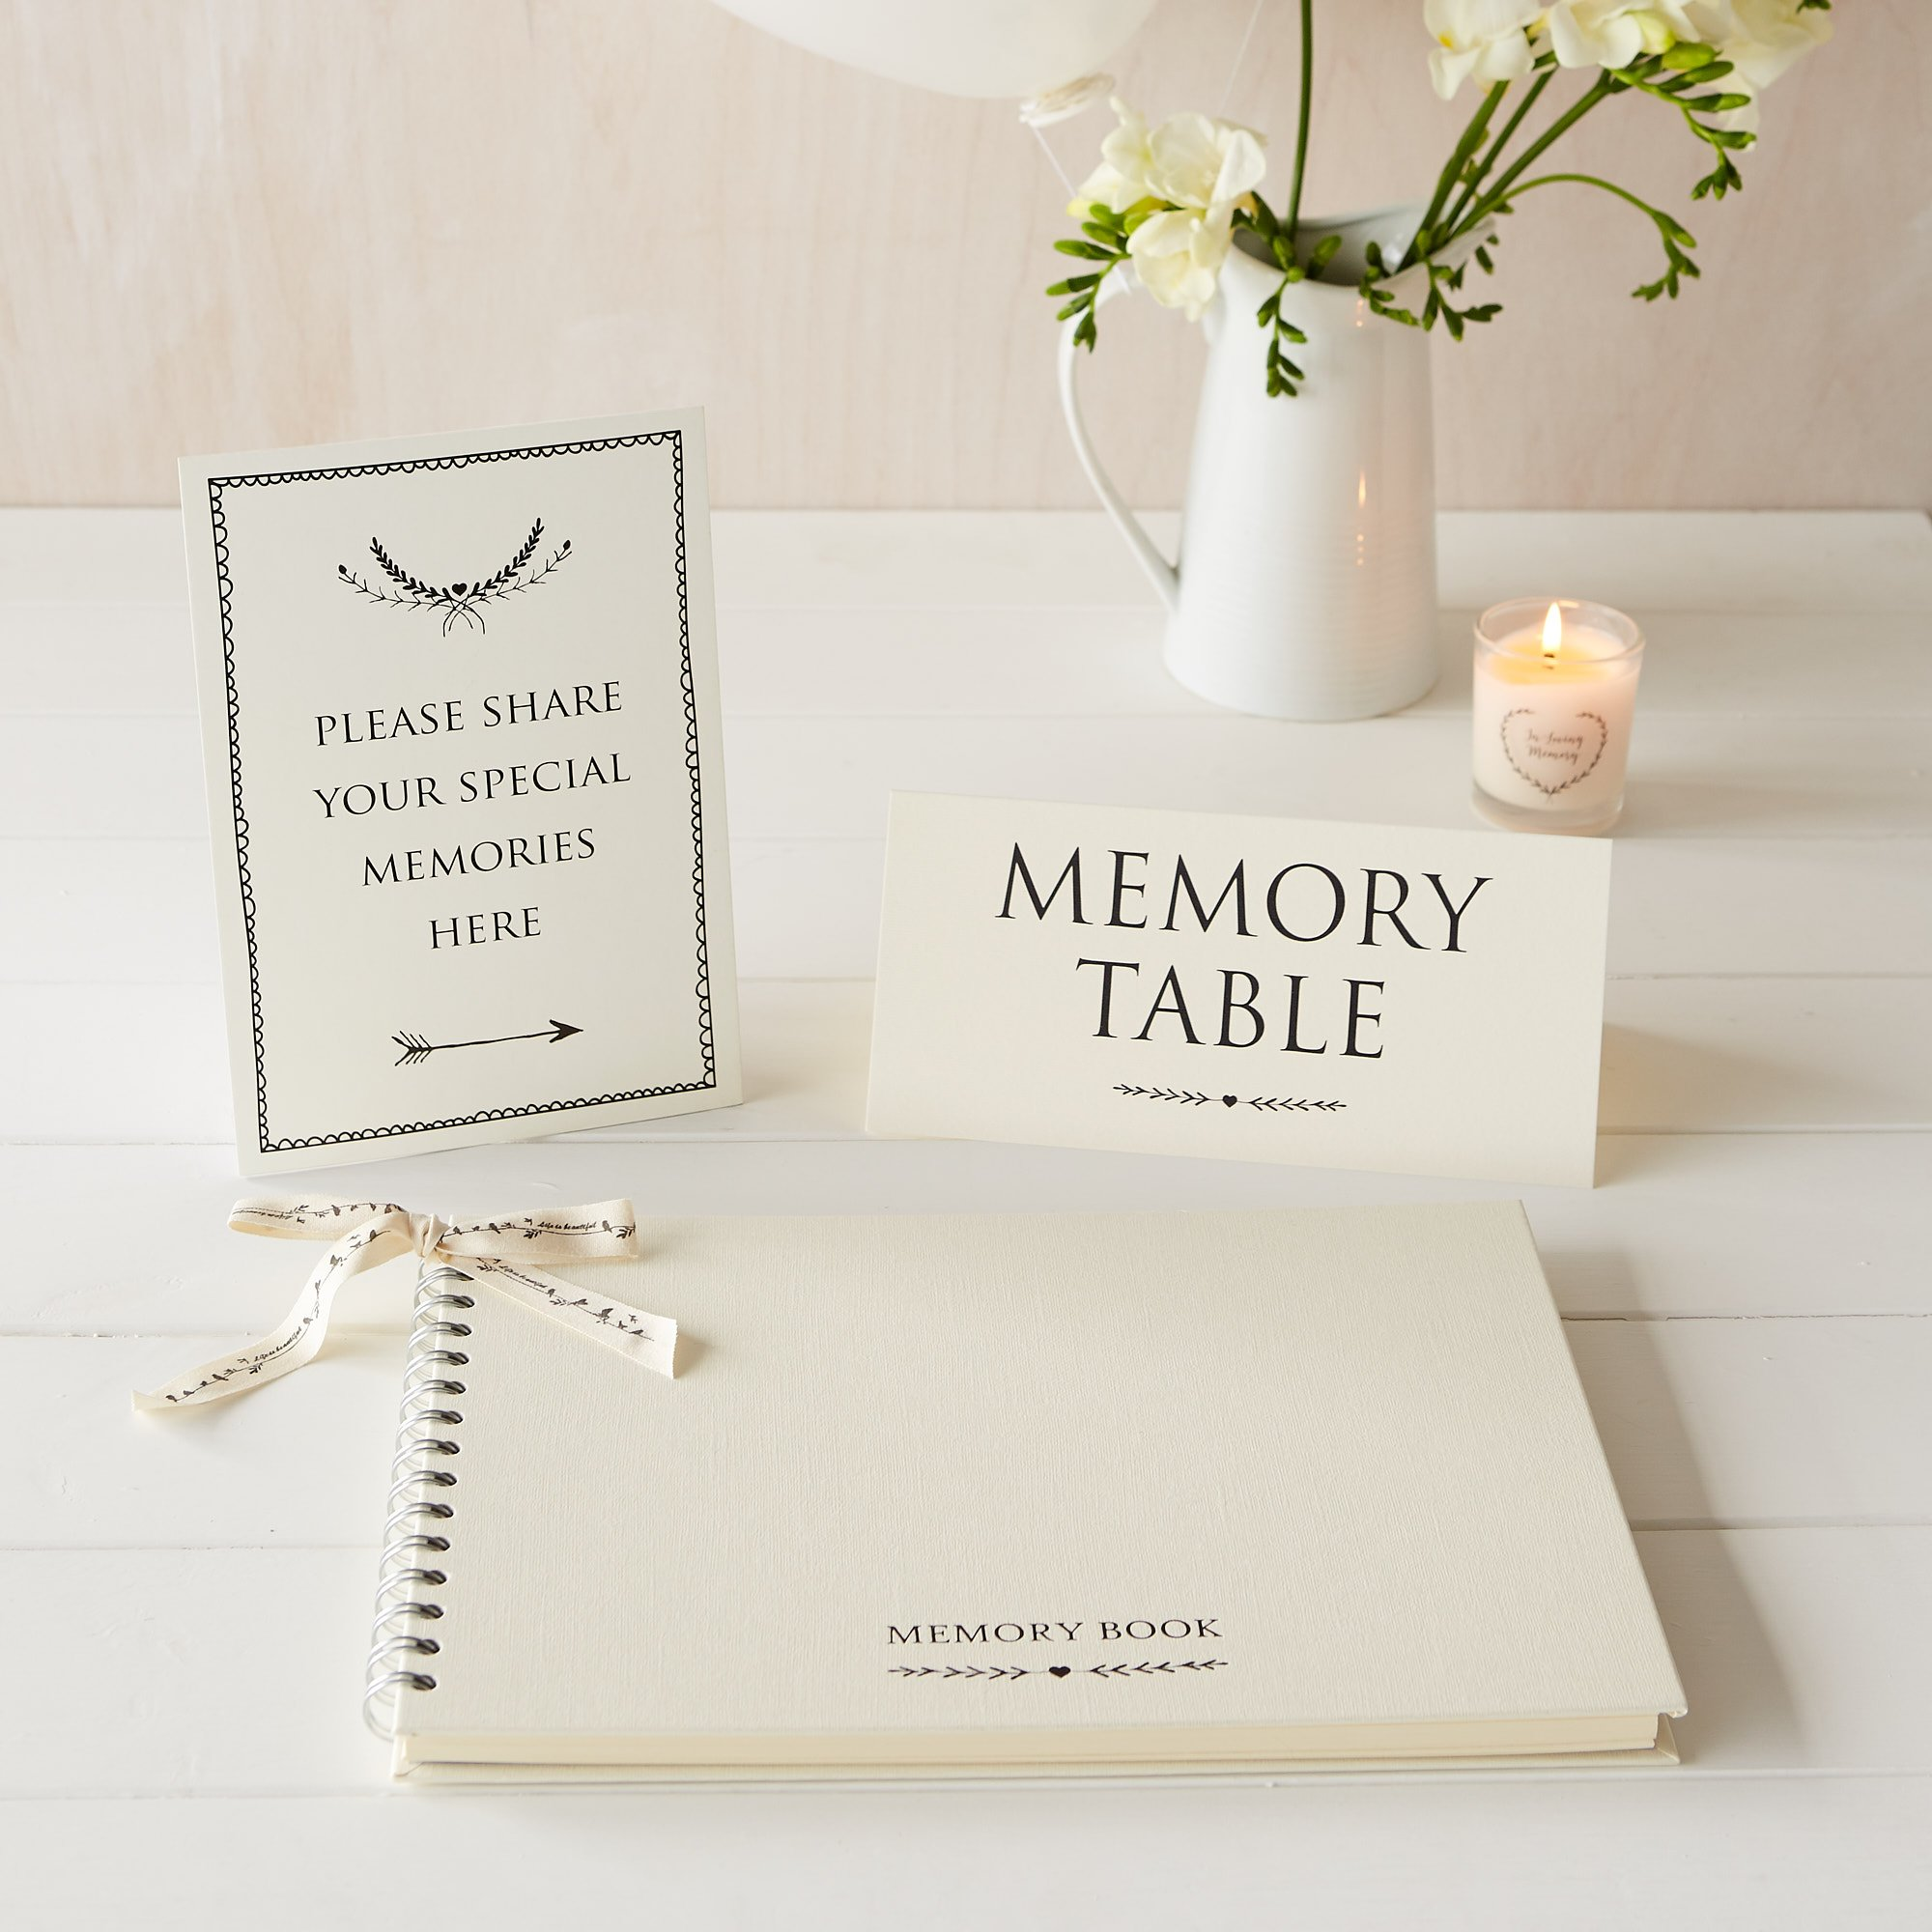 Large Luxury 12'' x 8'' Memory Book & 2 Sign Set for Funeral, Remembrance, Condolence, Celebration of Life - by Angel & Dove